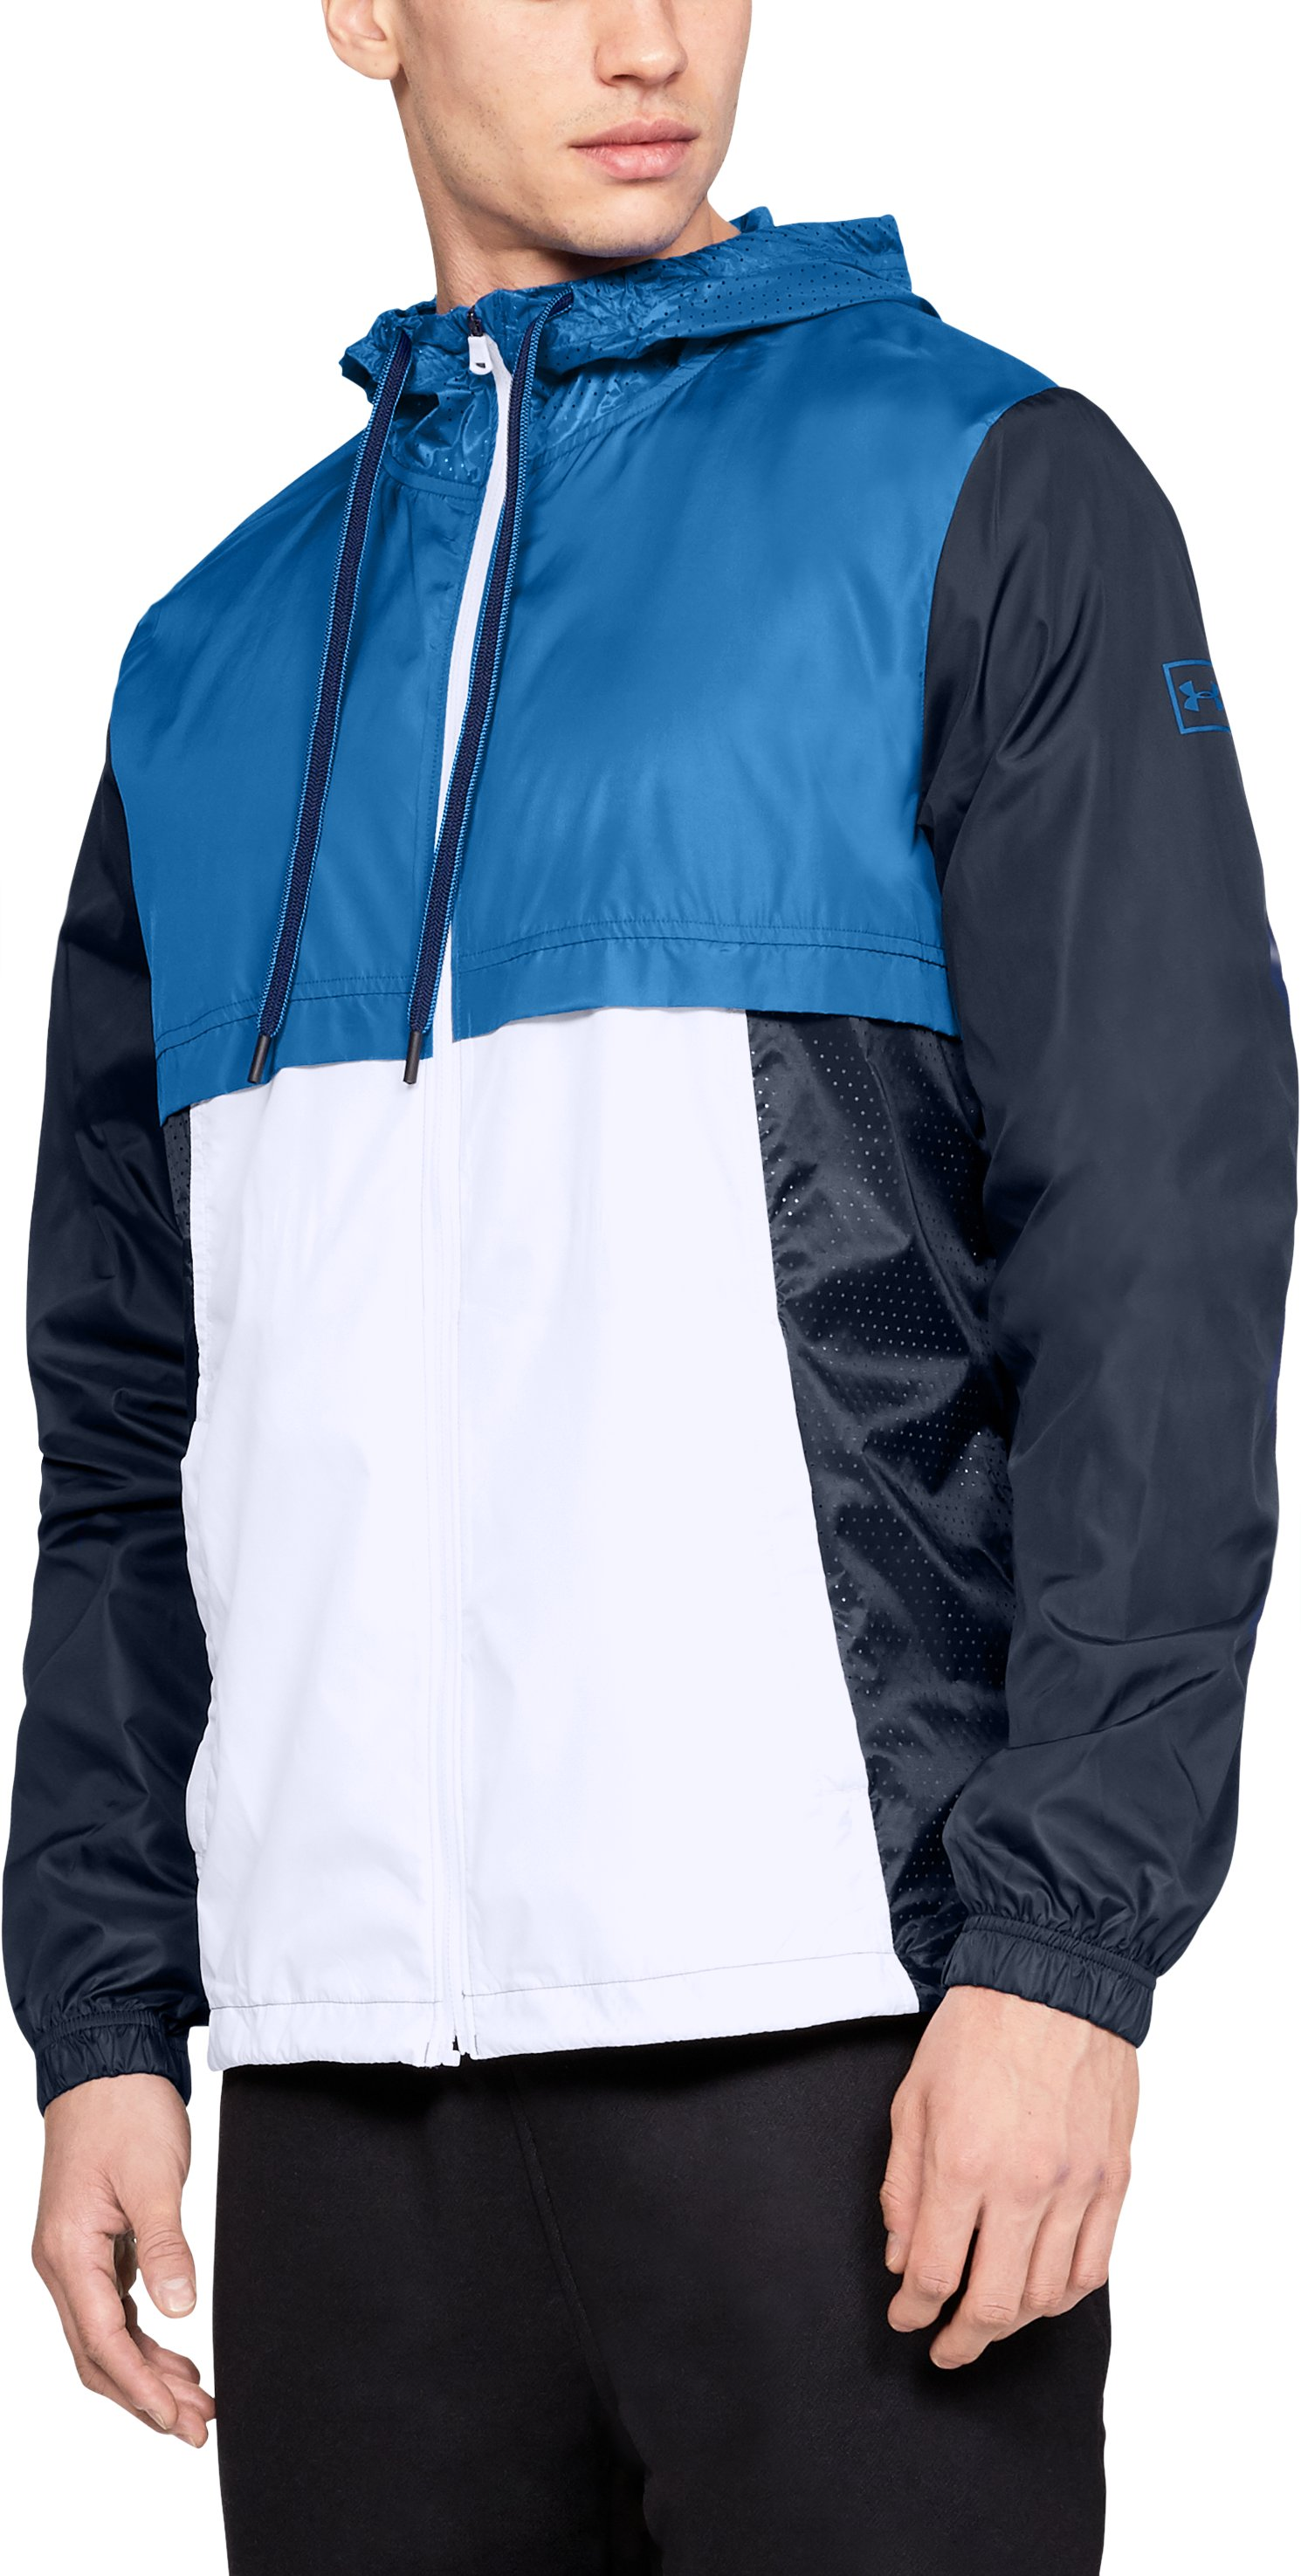 Men's UA Sportstyle Windbreaker Jacket, Academy,